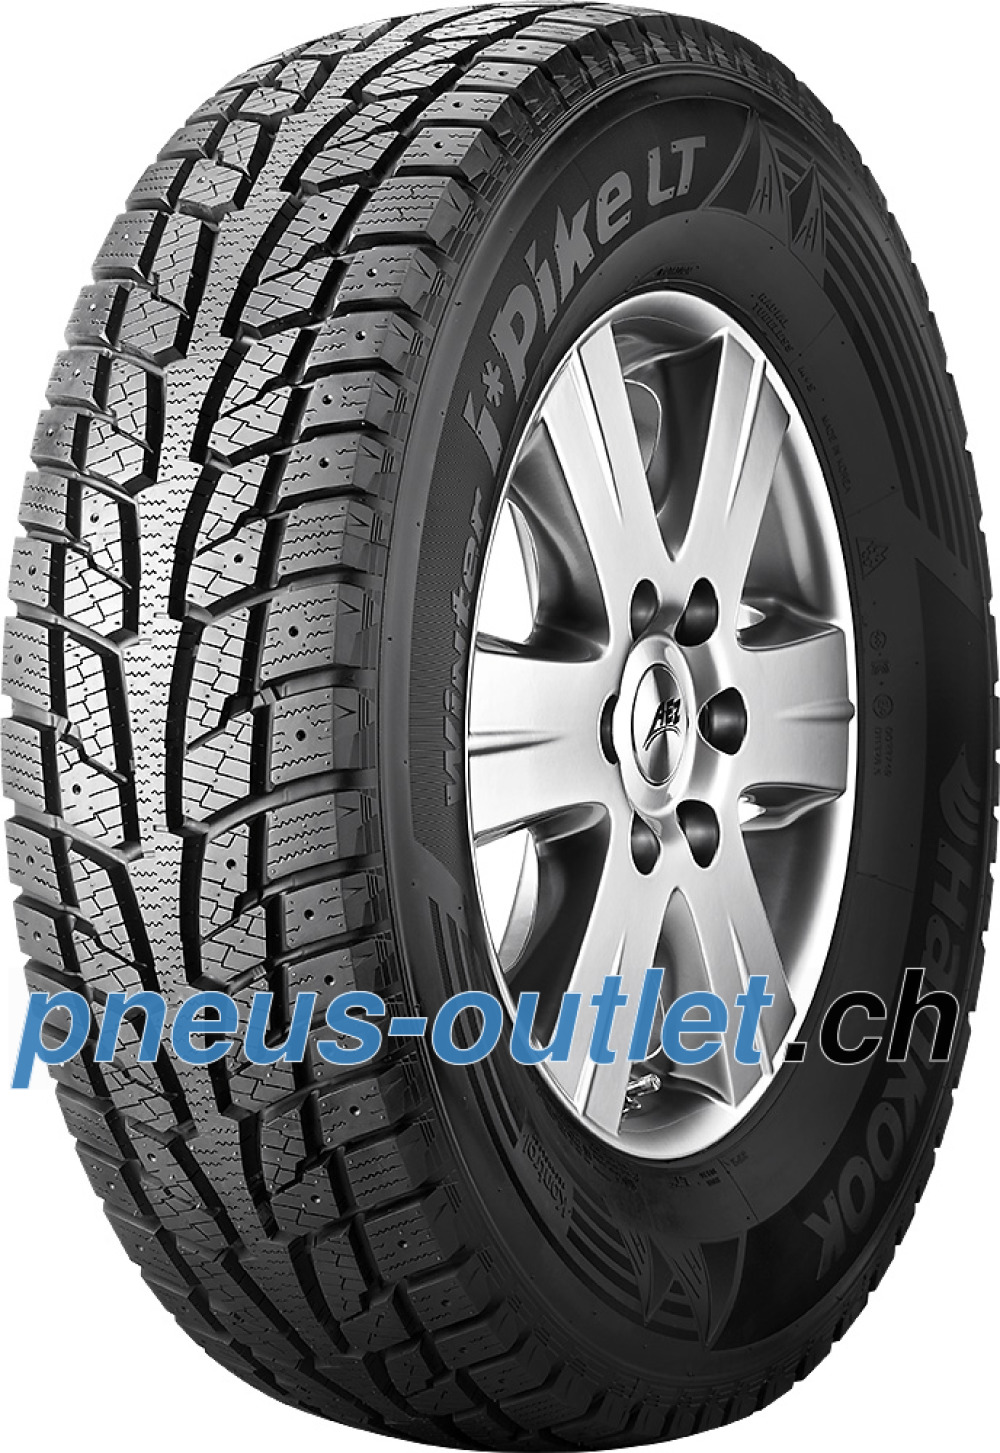 Hankook Winter i*Pike LT (RW09) ( 215/70 R15 109/107R , Cloutable )